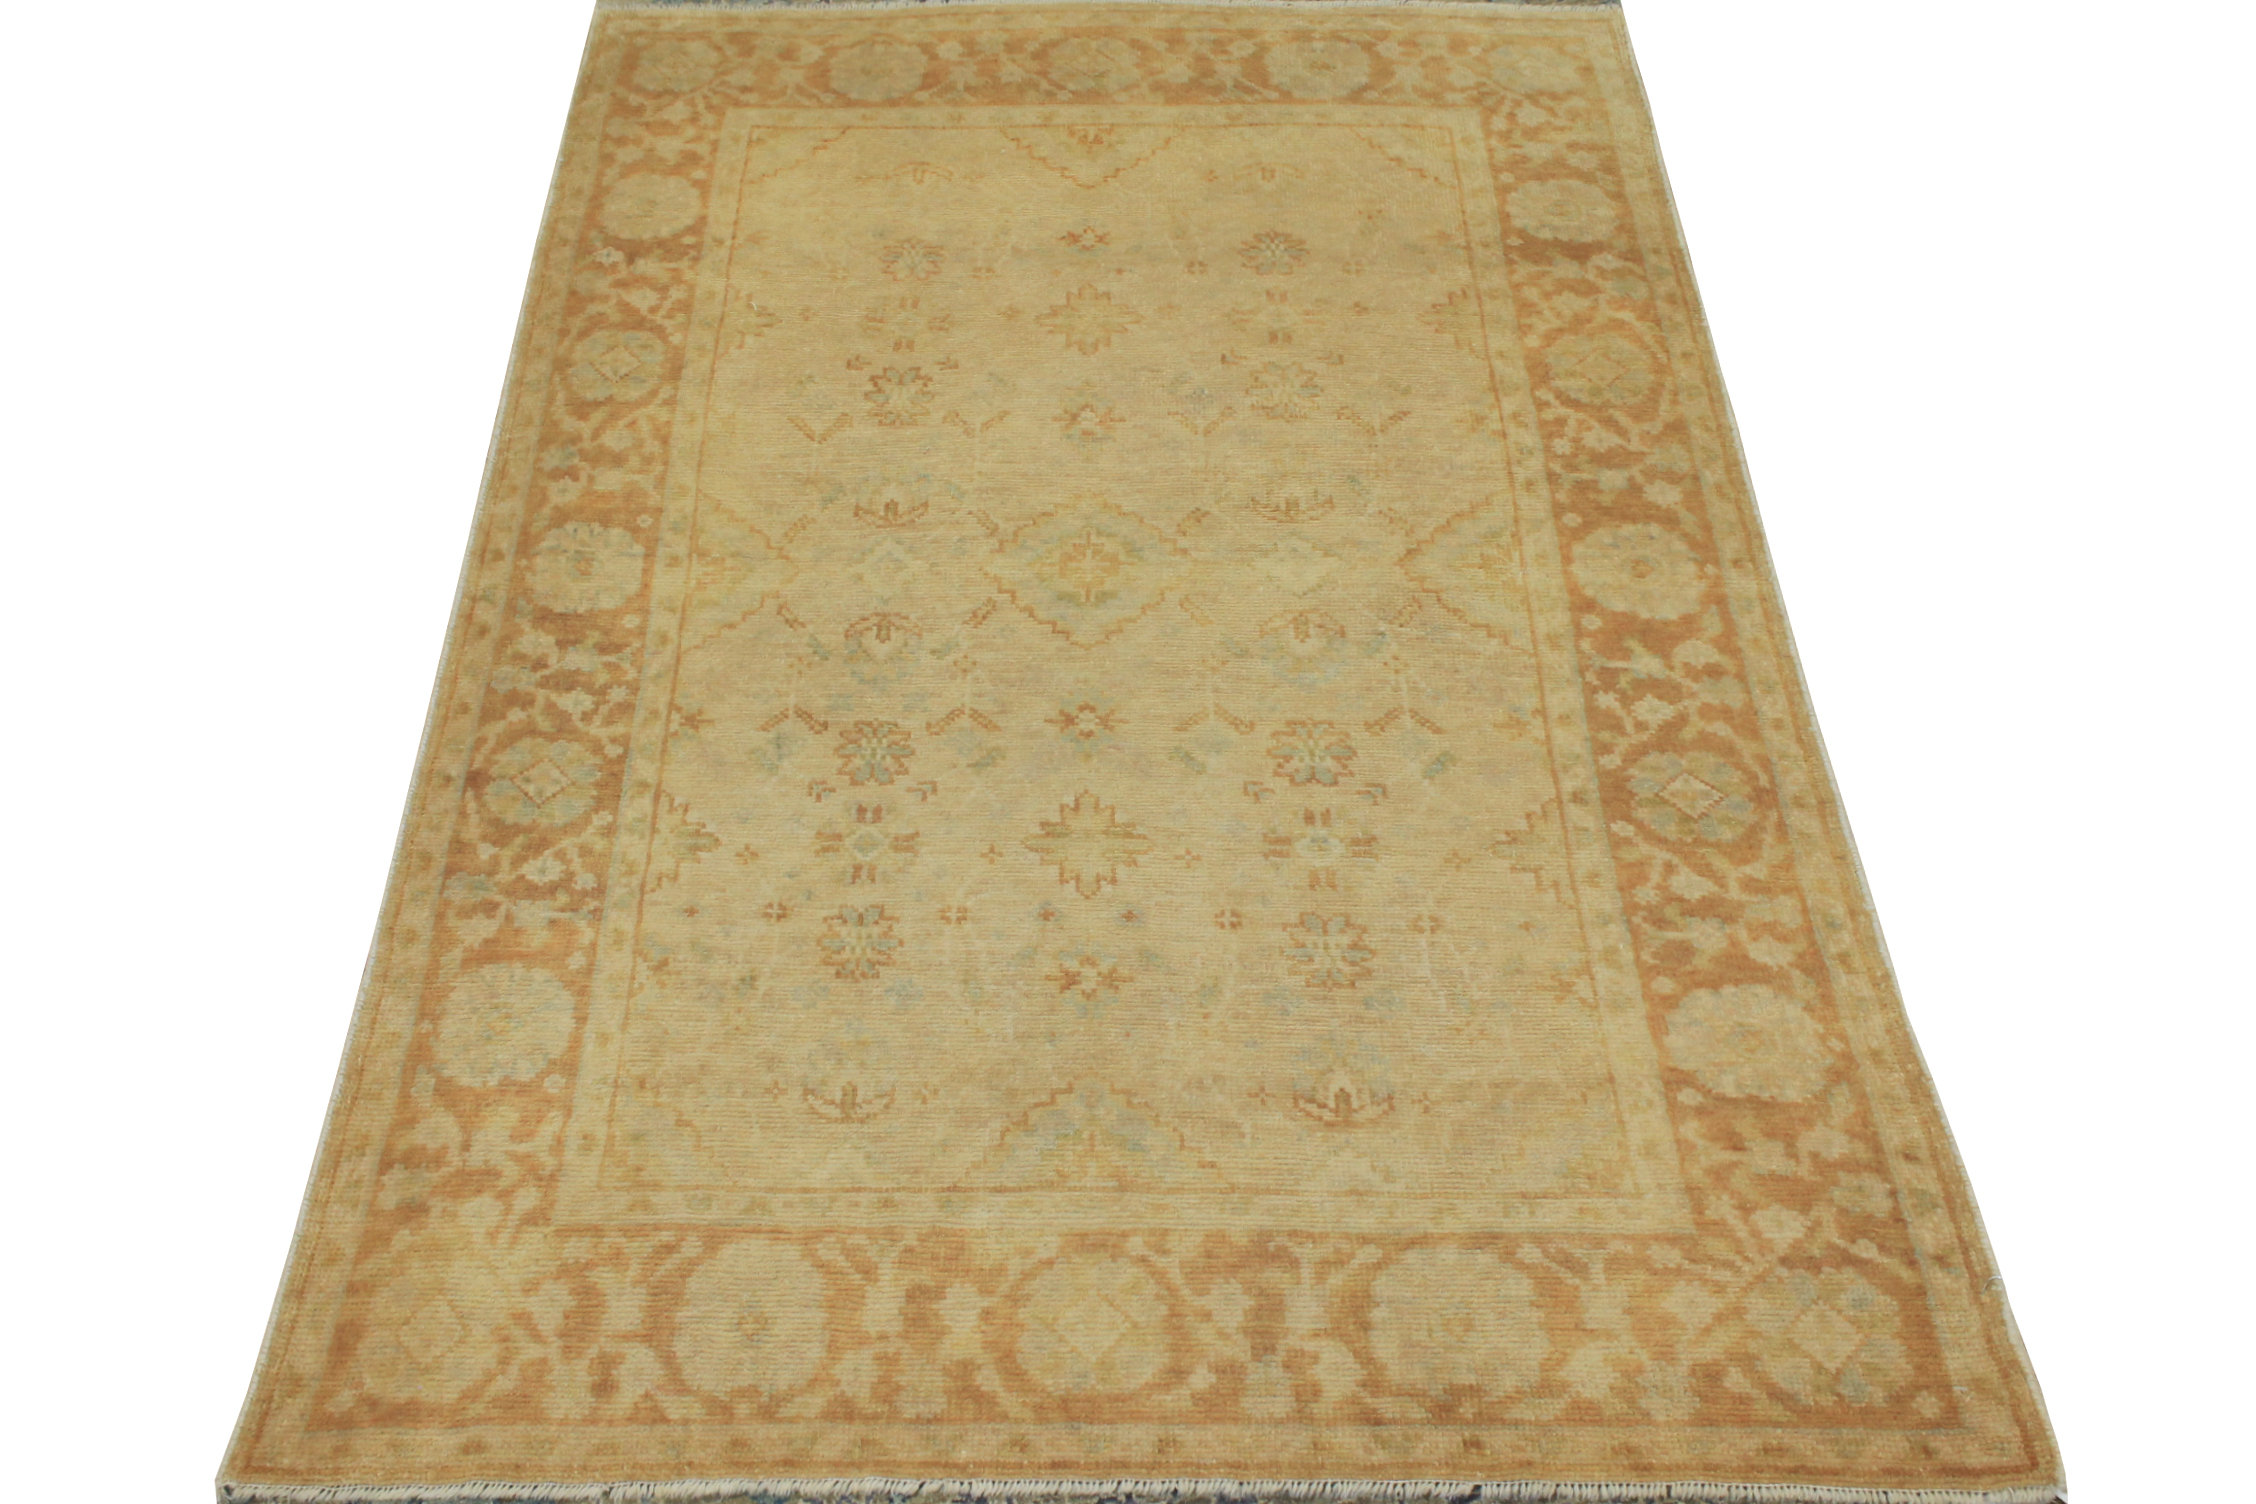 4x6 Oushak Hand Knotted Wool Area Rug - MR14868